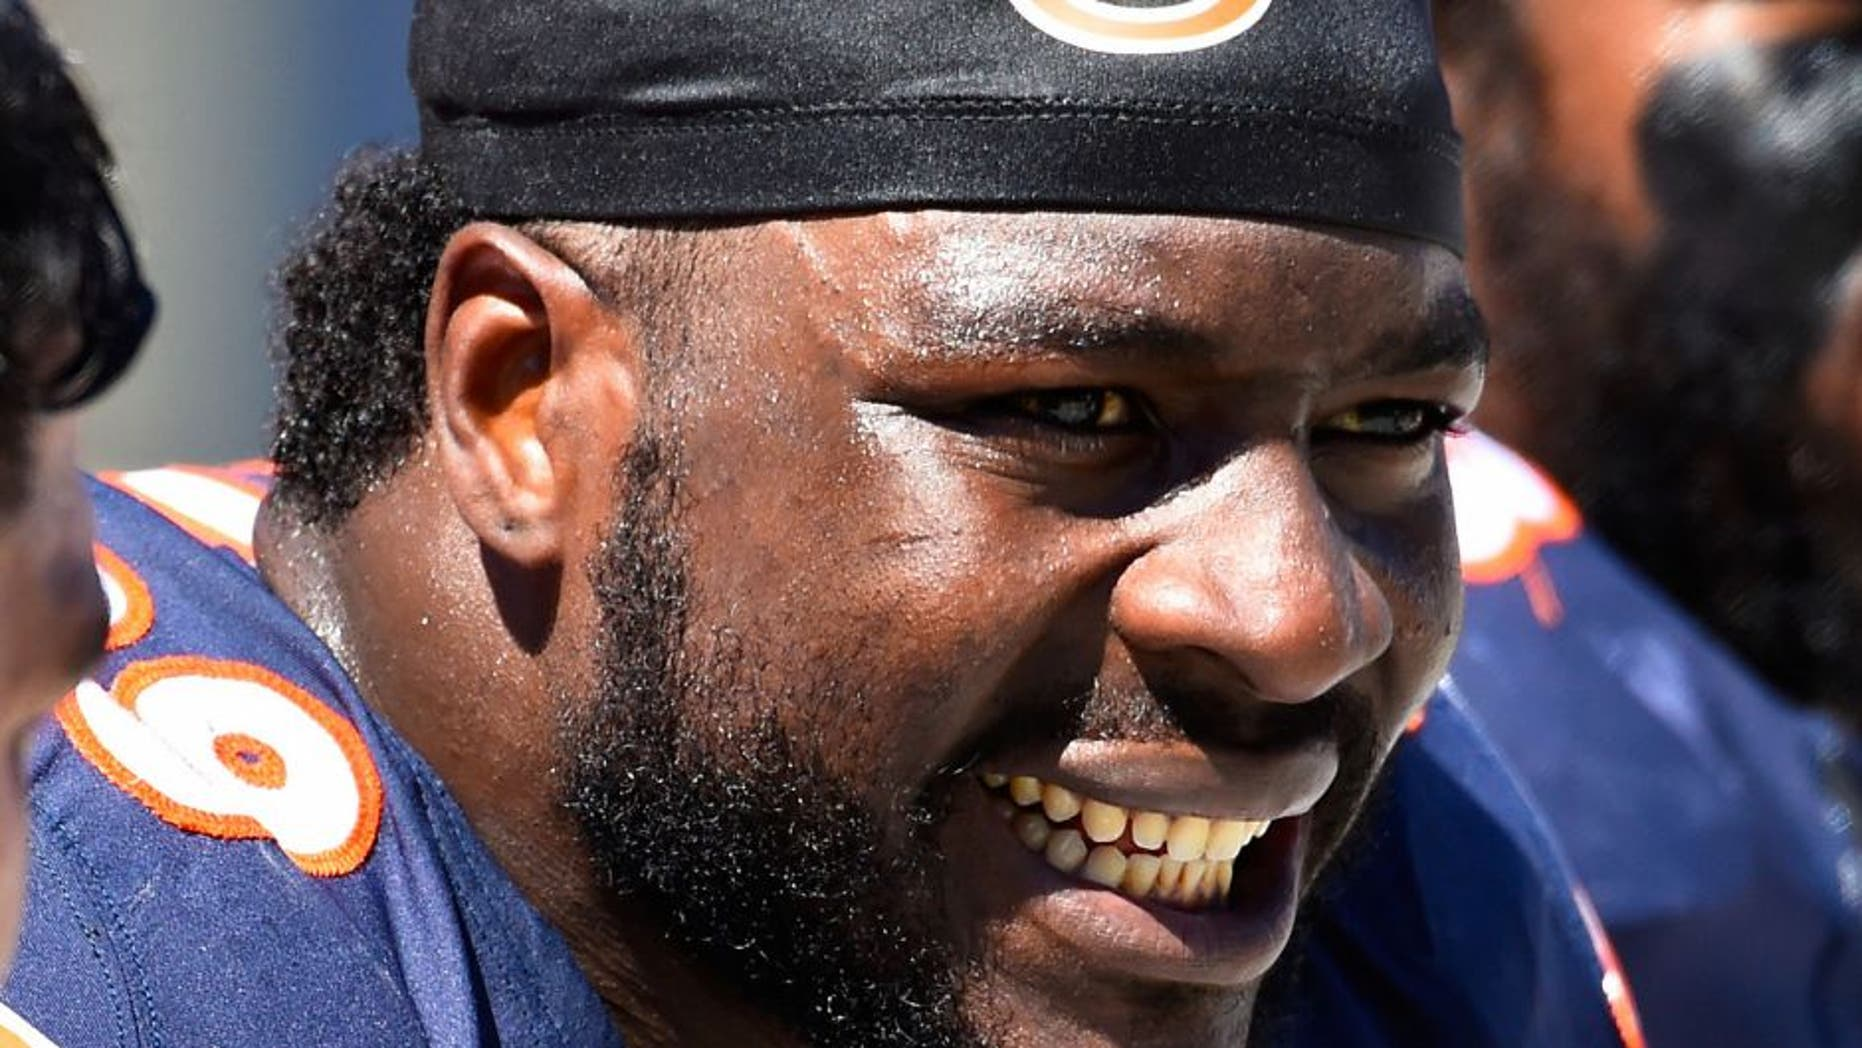 Sep 7, 2014; Chicago, IL, USA; Chicago Bears defensive end Lamarr Houston (99) during the second quarter at Soldier Field. Mandatory Credit: Mike DiNovo-USA TODAY Sports